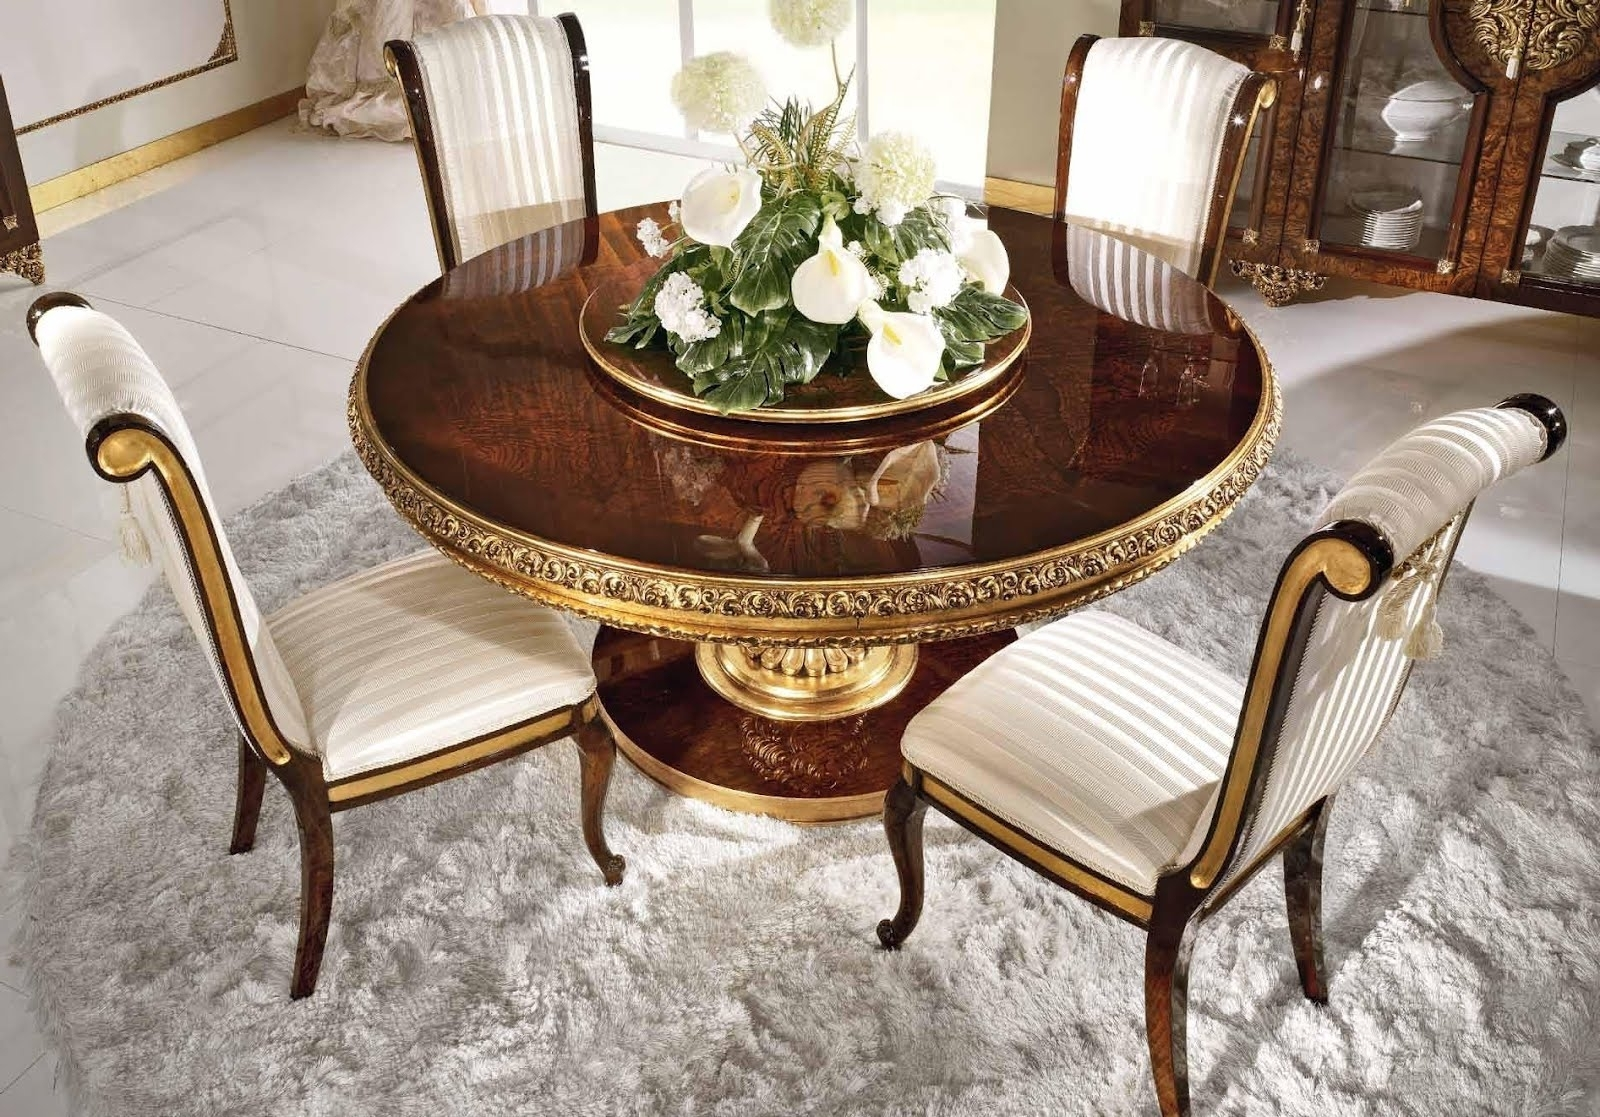 Royal Dining Tables For Well Known Antique & French Furniture : Royal Round Dining Table In Classic Style (View 10 of 25)